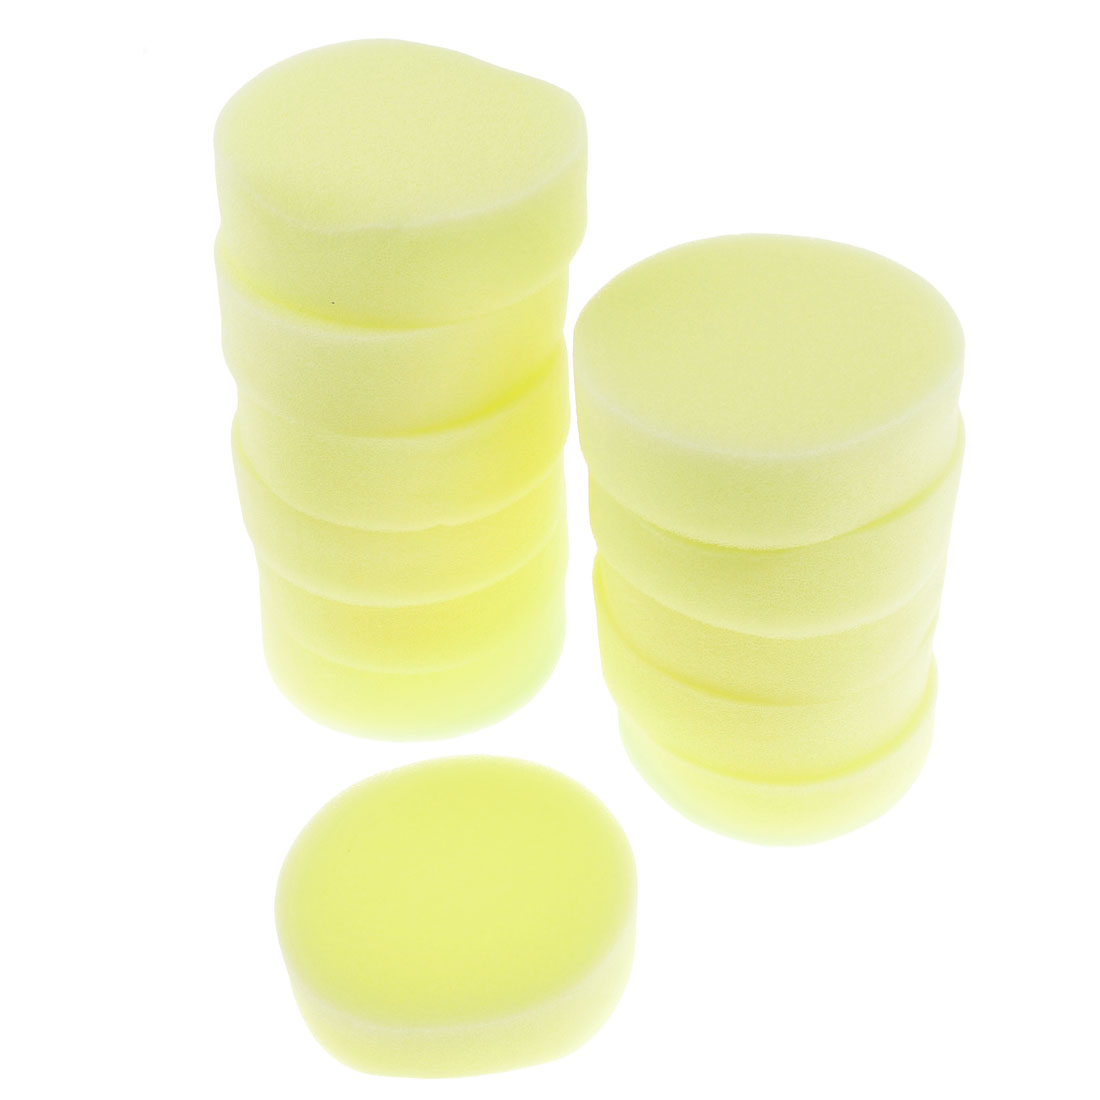 12PCS Light Yellow Round Soft Sponge Car Glass Washing Cleaning Pad Cushion